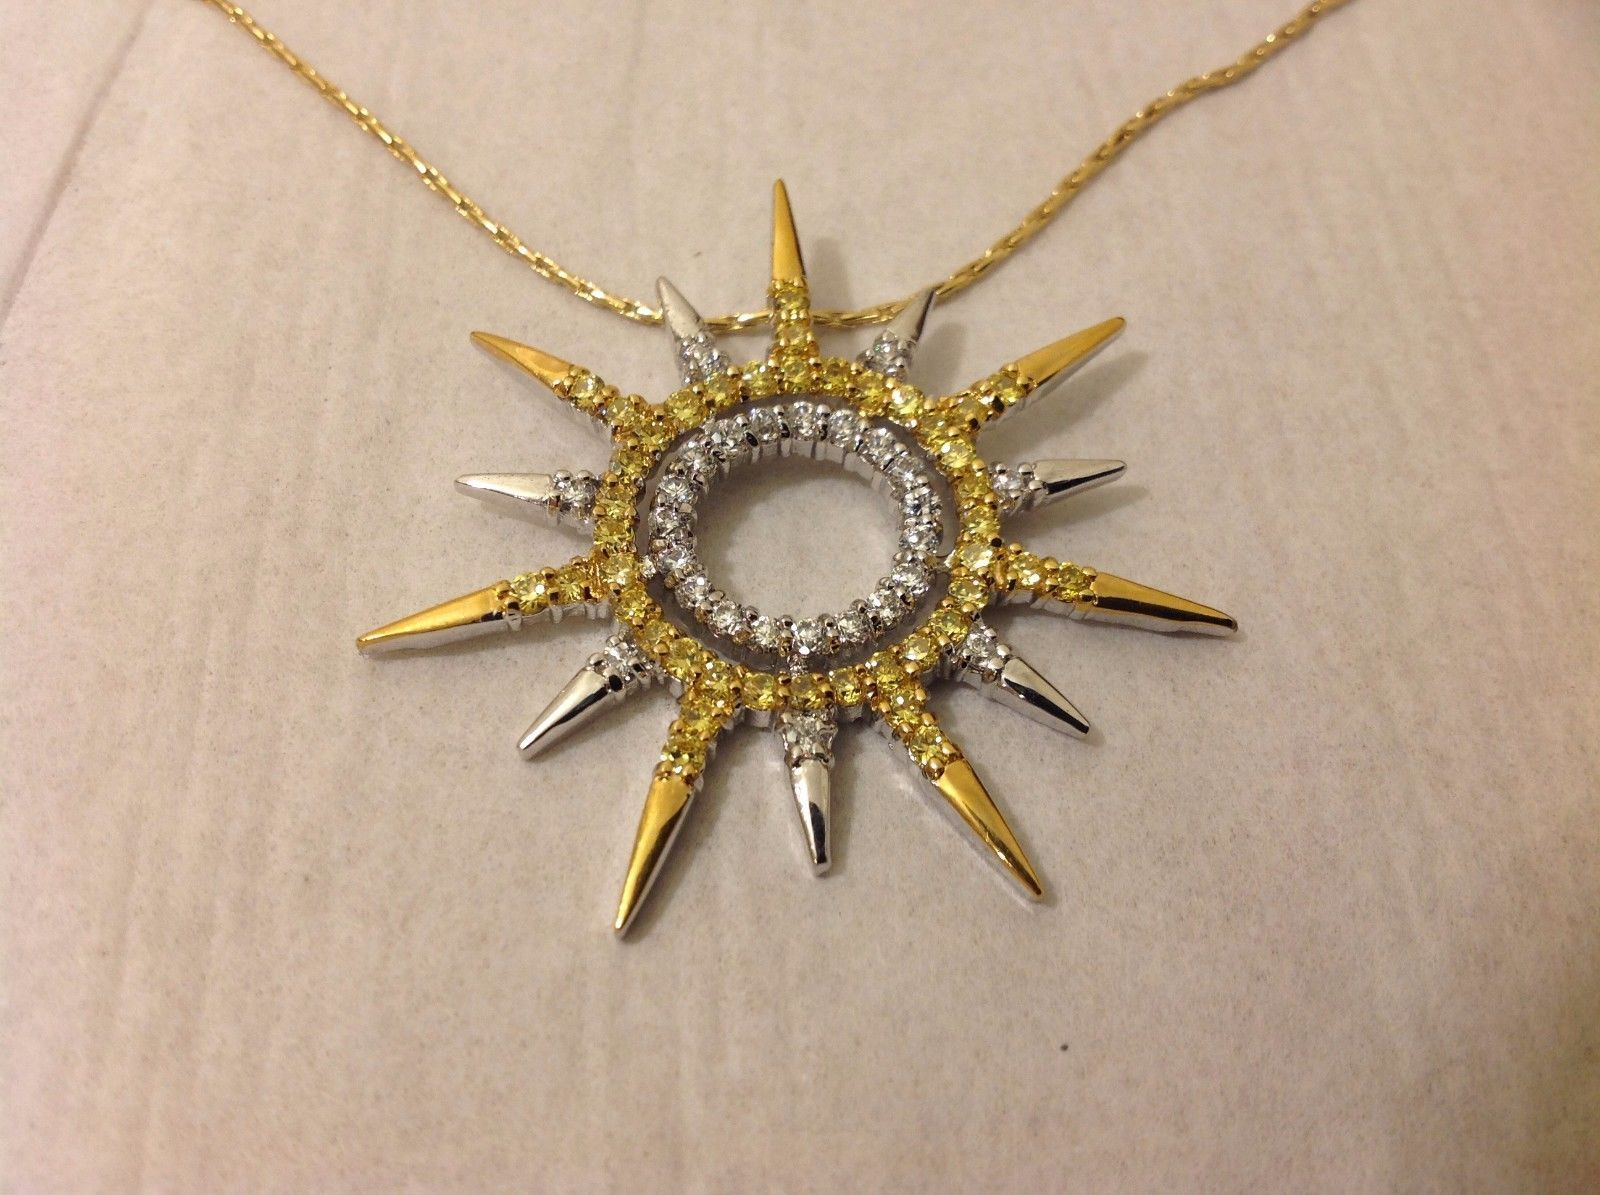 NEW Gold Toned Linked Necklace Solar Pendant with Swarovski Elements on Pendant